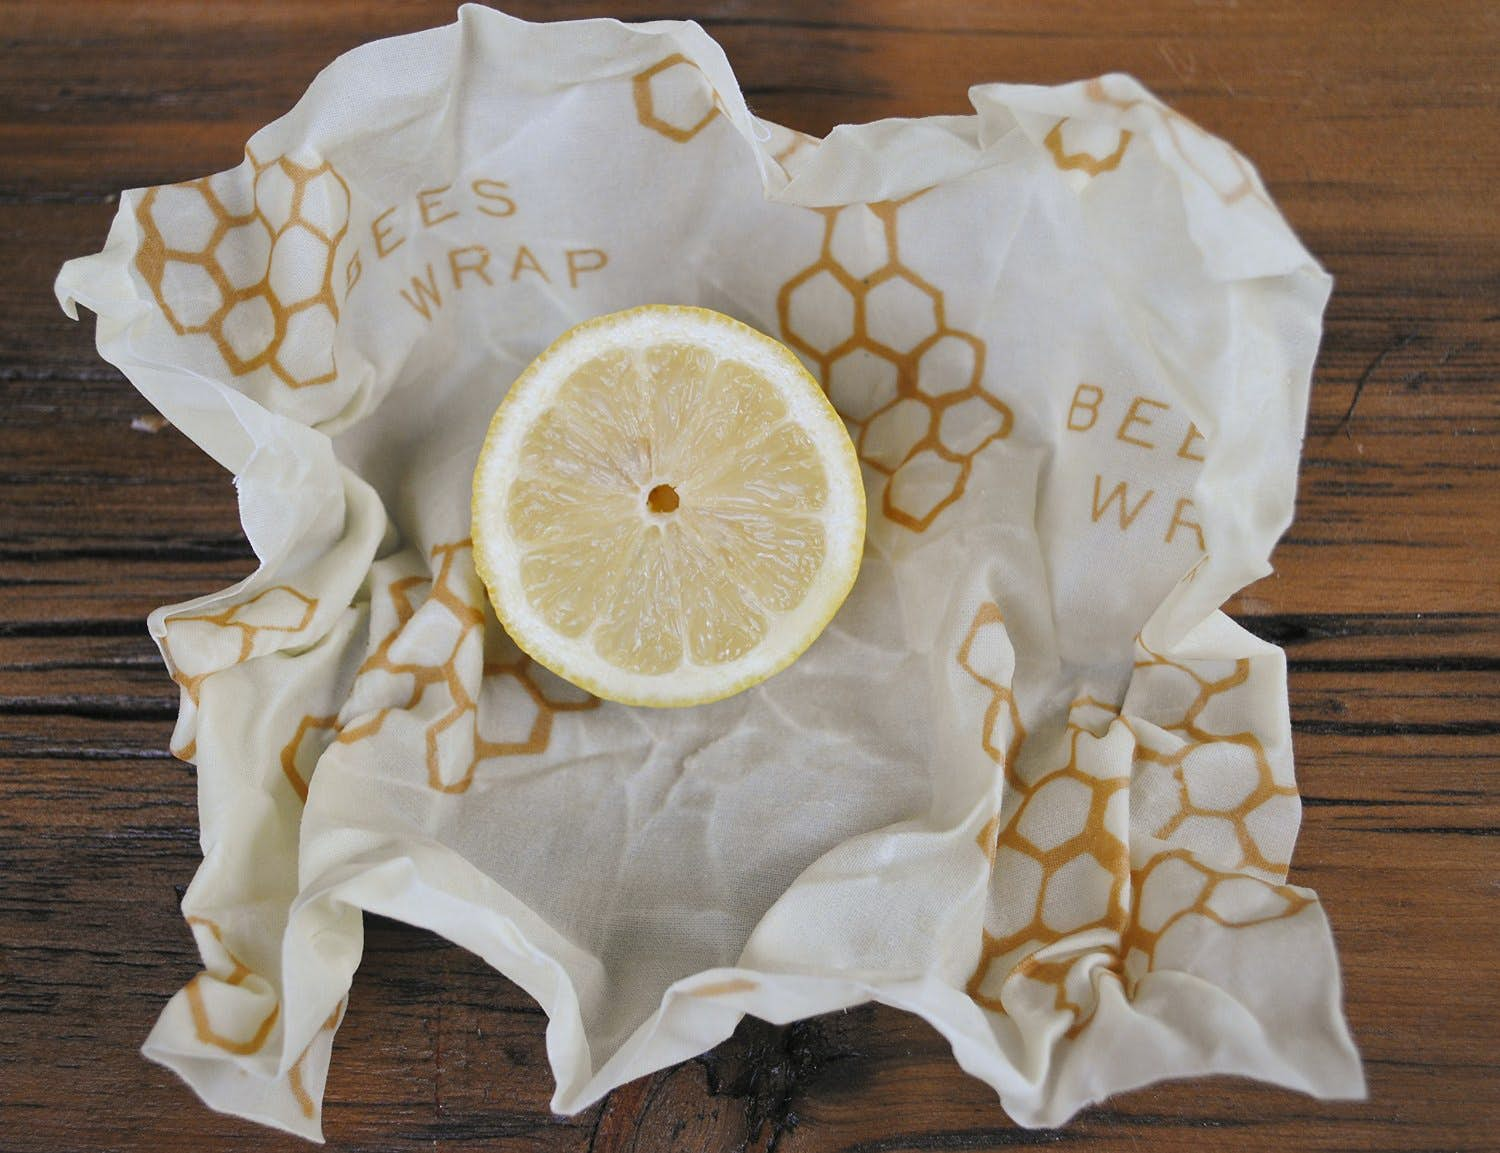 Reusable food wrap by Bee's